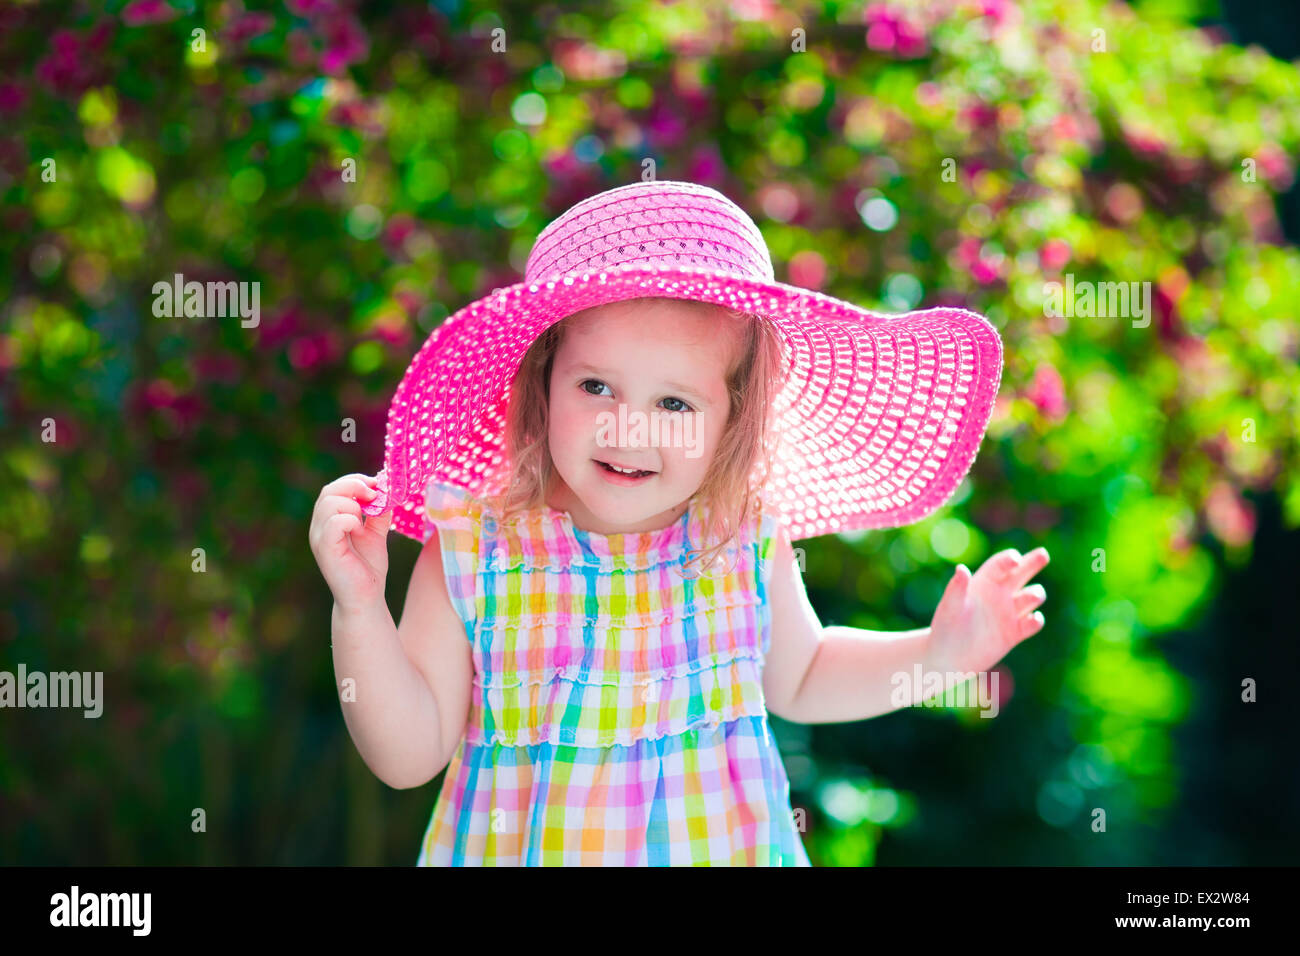 little cute girl with flowers. child wearing a pink hat playing in a